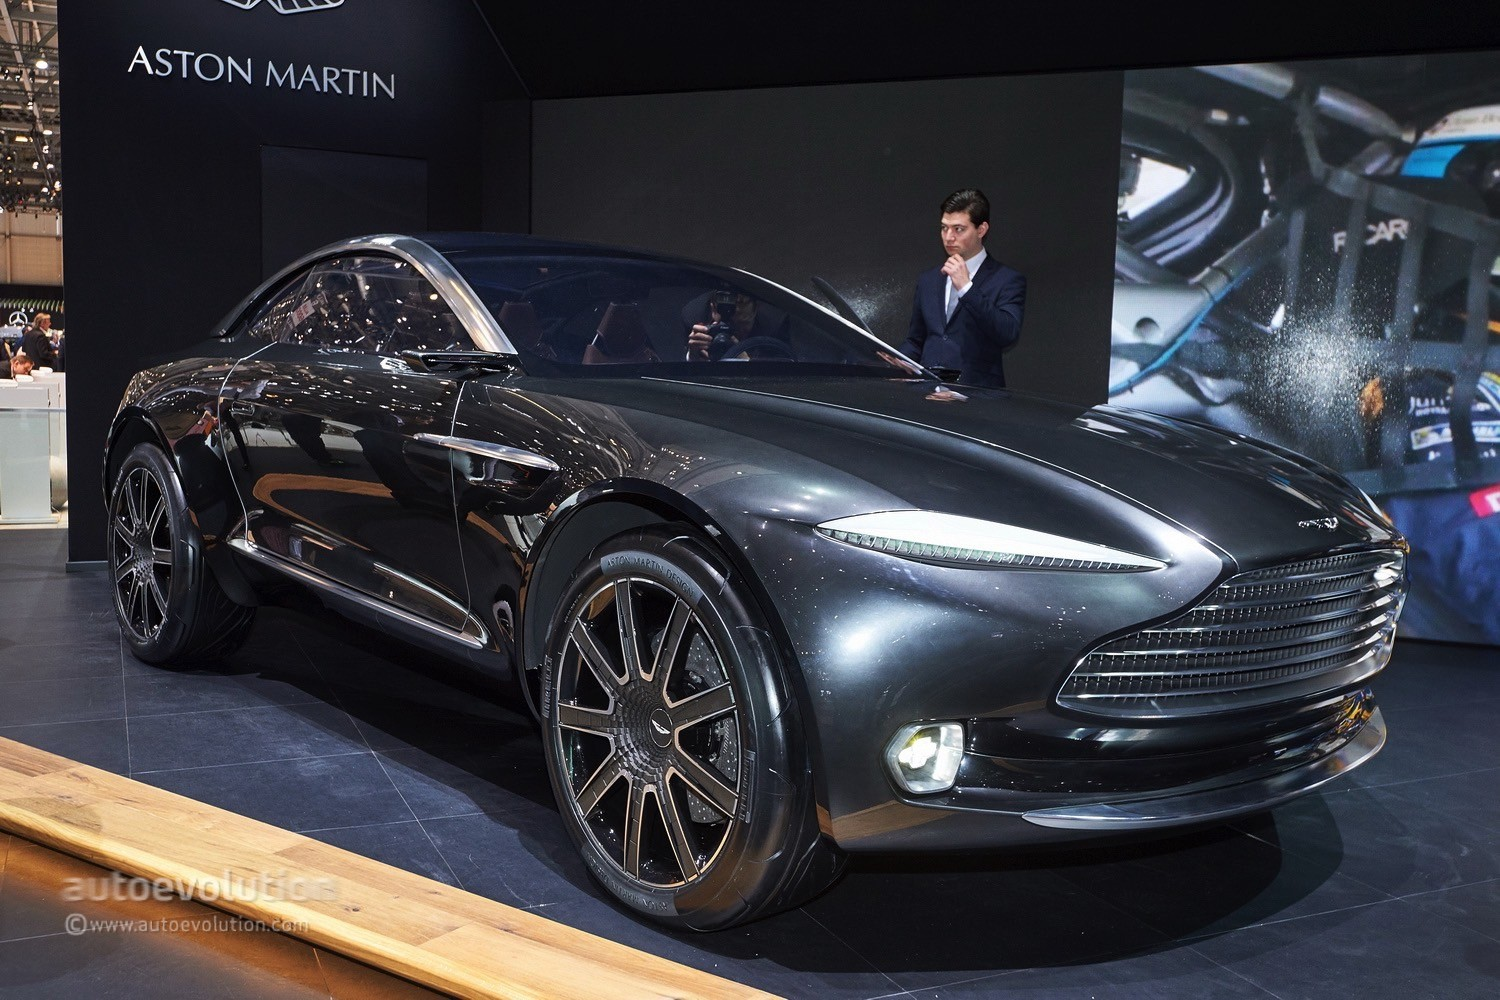 Aston Martin Suv To Have Interior Designed In China Autoevolution